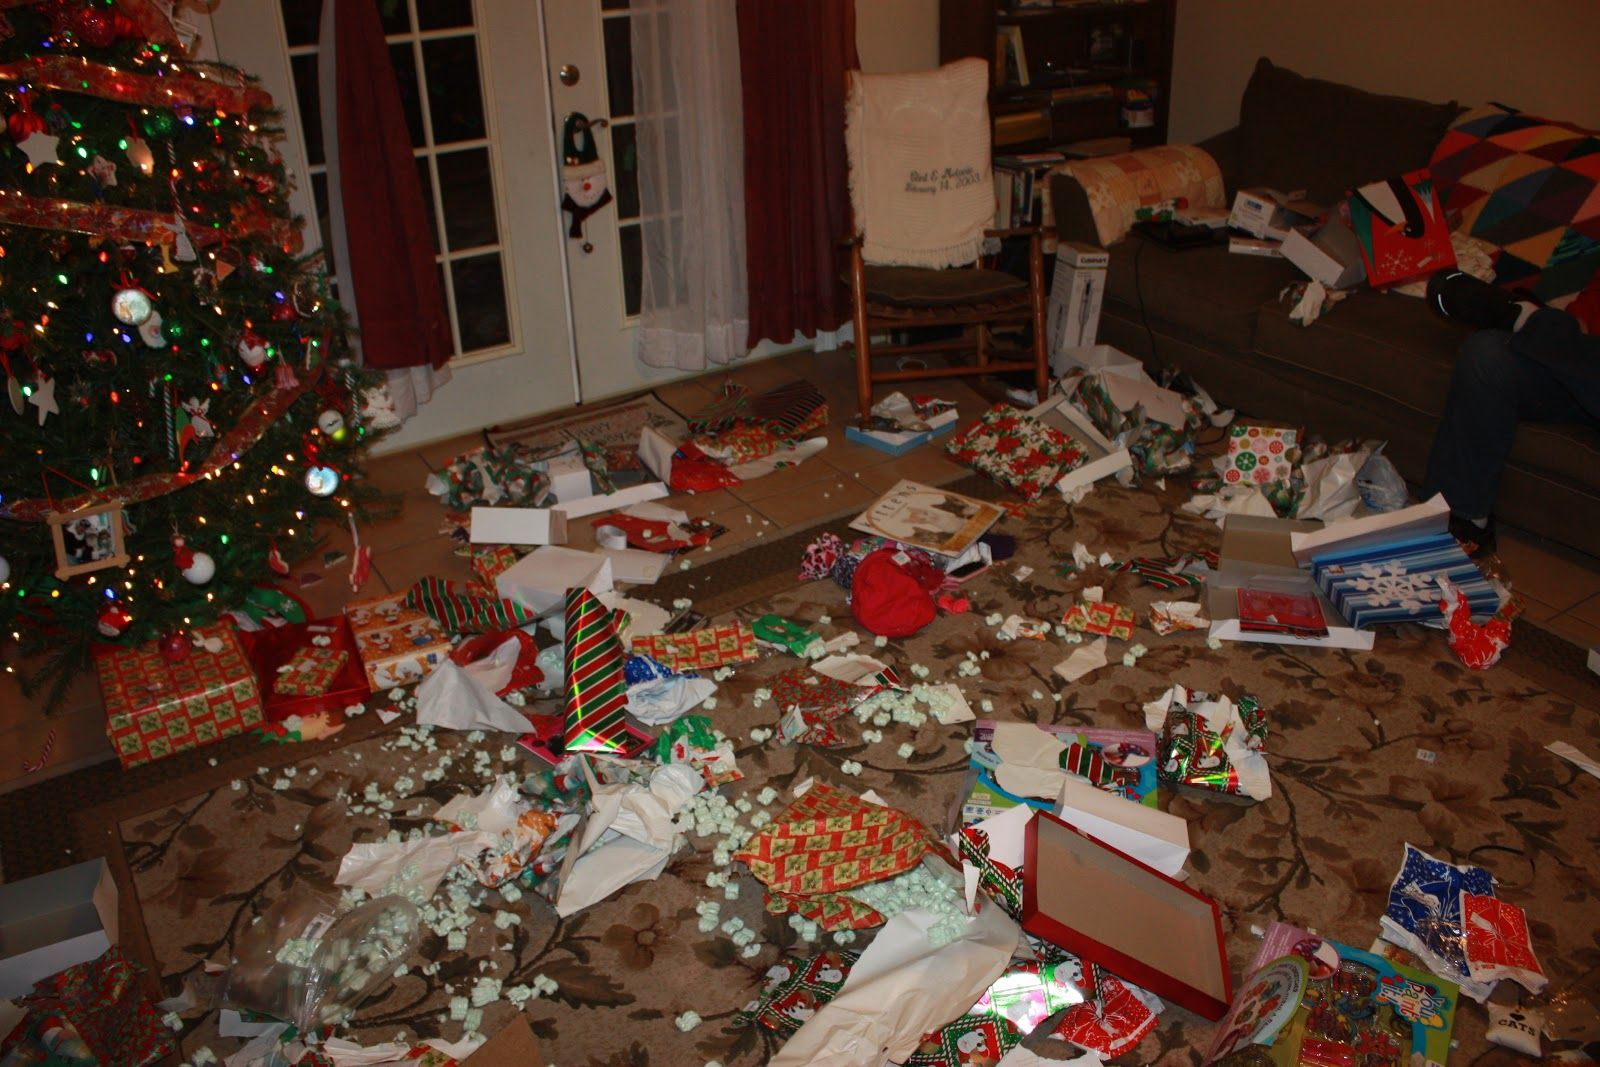 Does your house end up looking like this once the holidays are over? Isn't cleaning up the mess the LAST thing you want to do when your company leaves? Let ECOMAIDS take care of the mess while you find some time to relax. An ECOMAIDS cleaning is a great gift to give yourself. Also, our e-Gift Cards make a great gift for that friend/family member hosting this year's gathering! Visit www.ecomaids.com to order yours now!